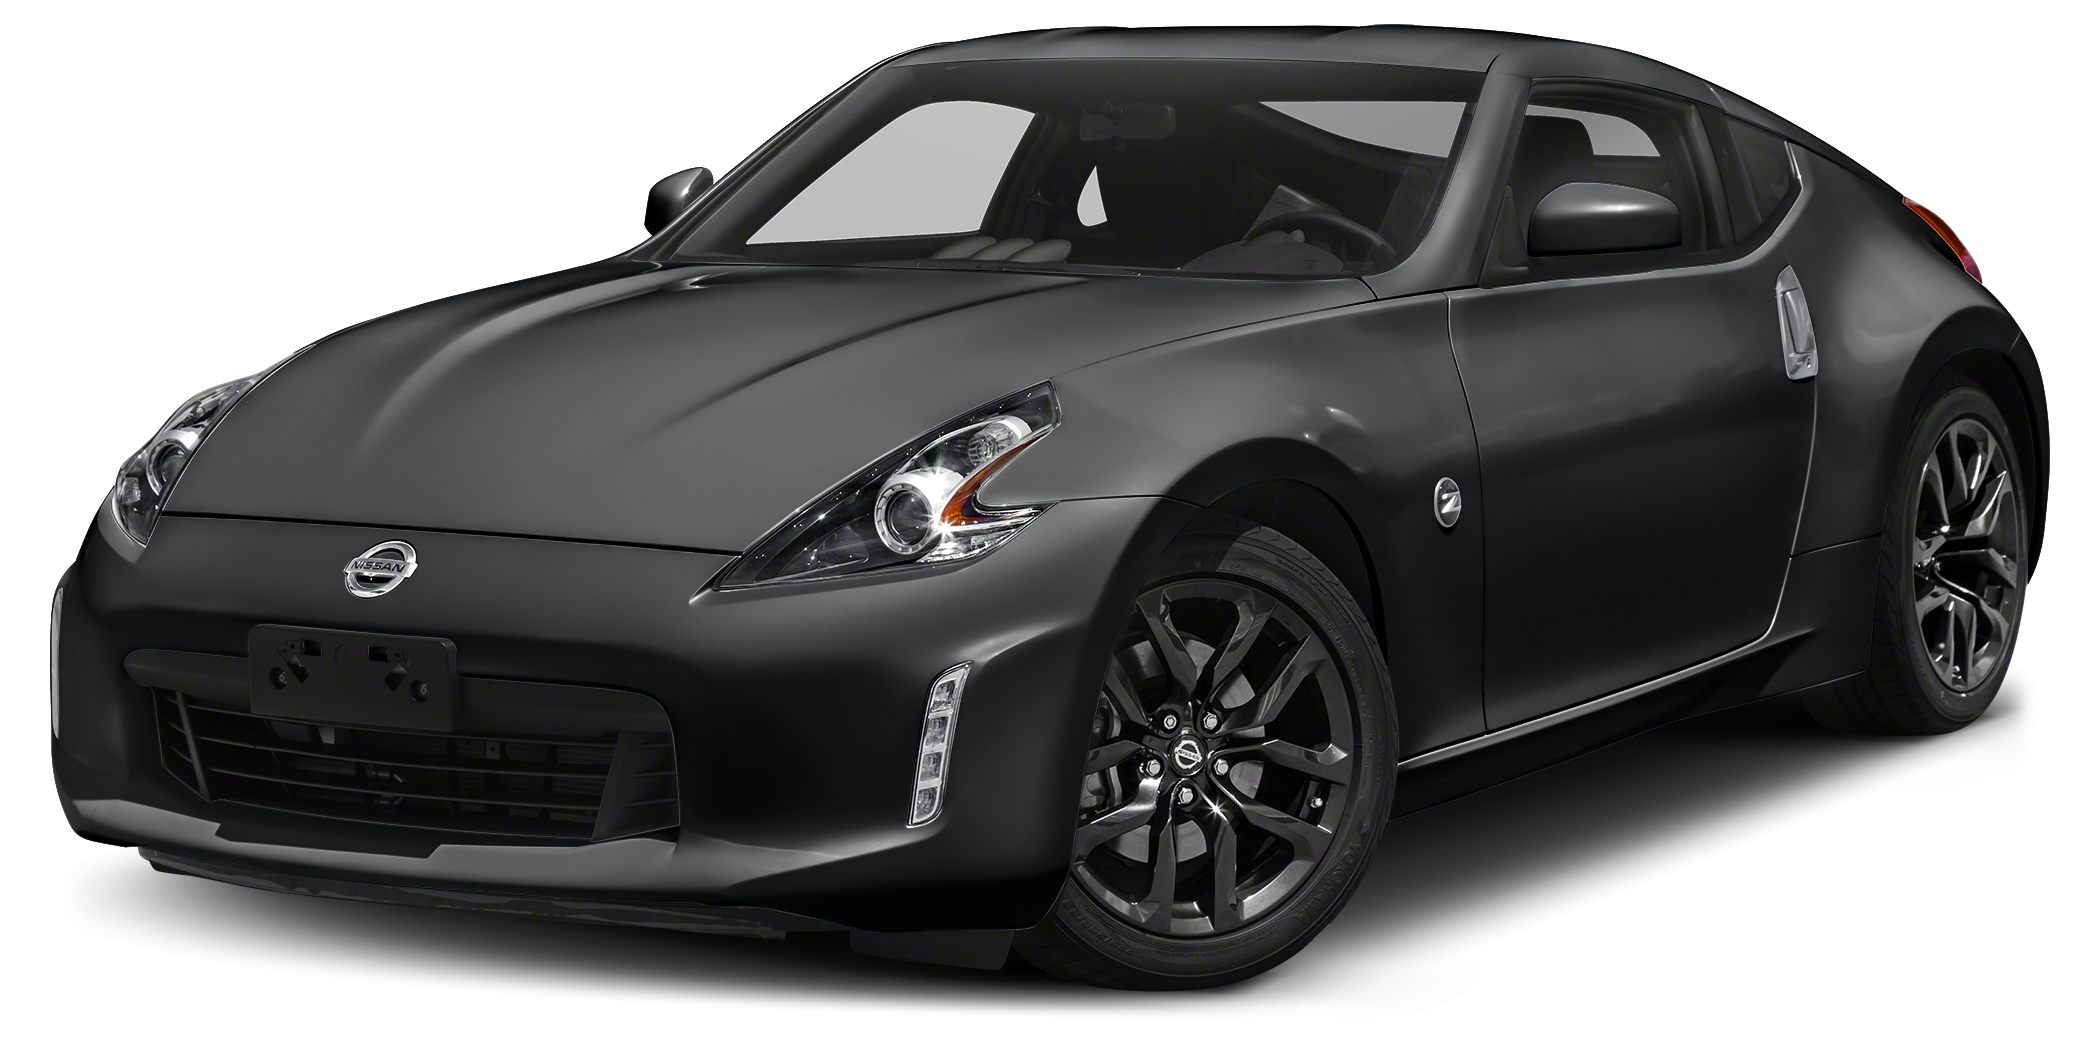 2018 Nissan 370Z Touring Featuring a sleek and sporty exterior the Nissan 370Z comes available as